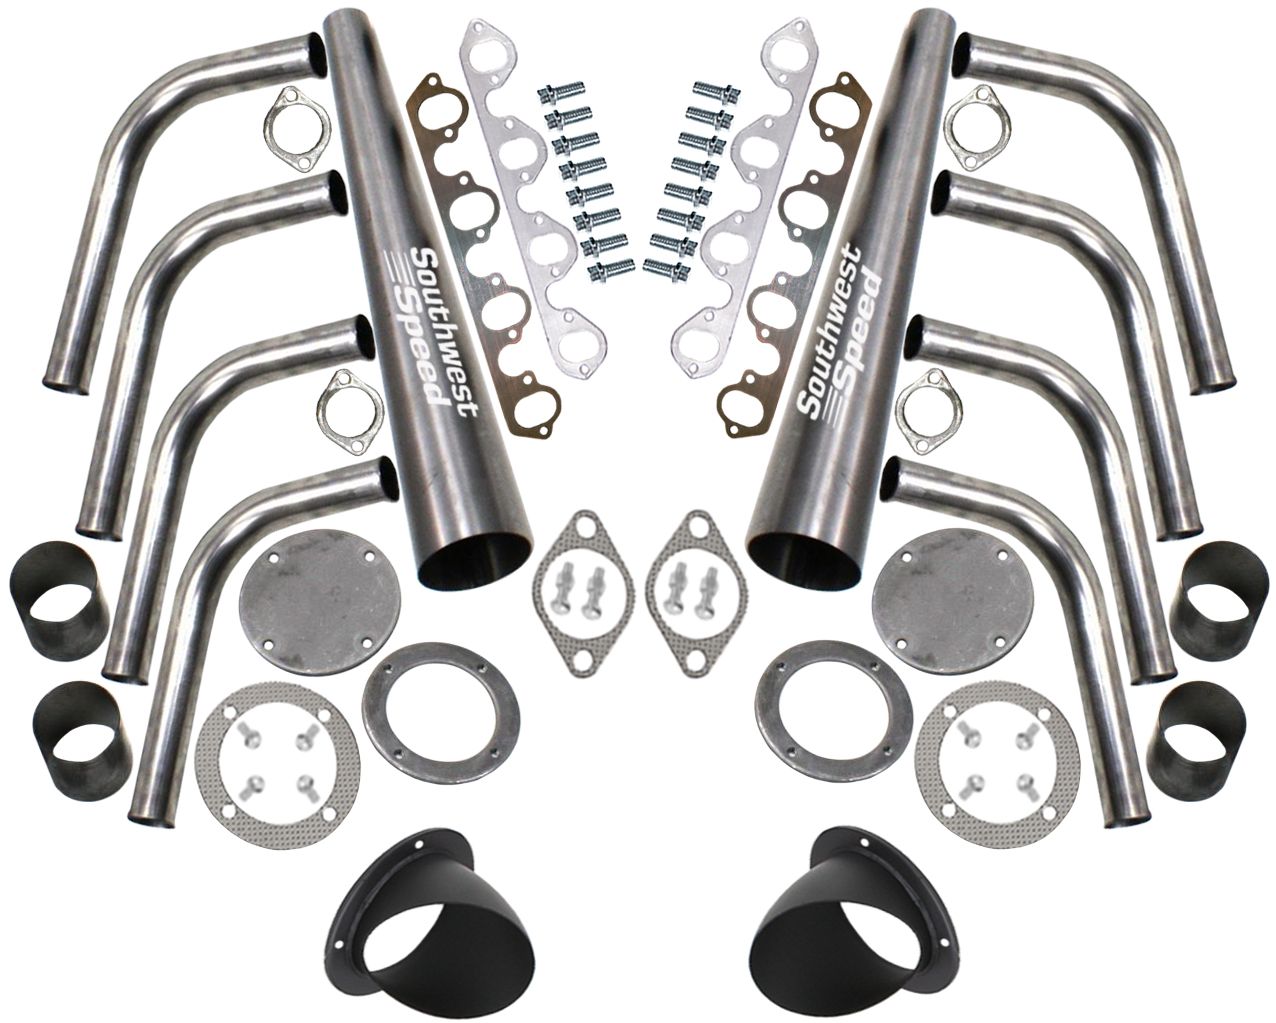 New lake style header kit with turnoutsbbf 429 460ci big block ford drivers side header measurement chart solutioingenieria Gallery